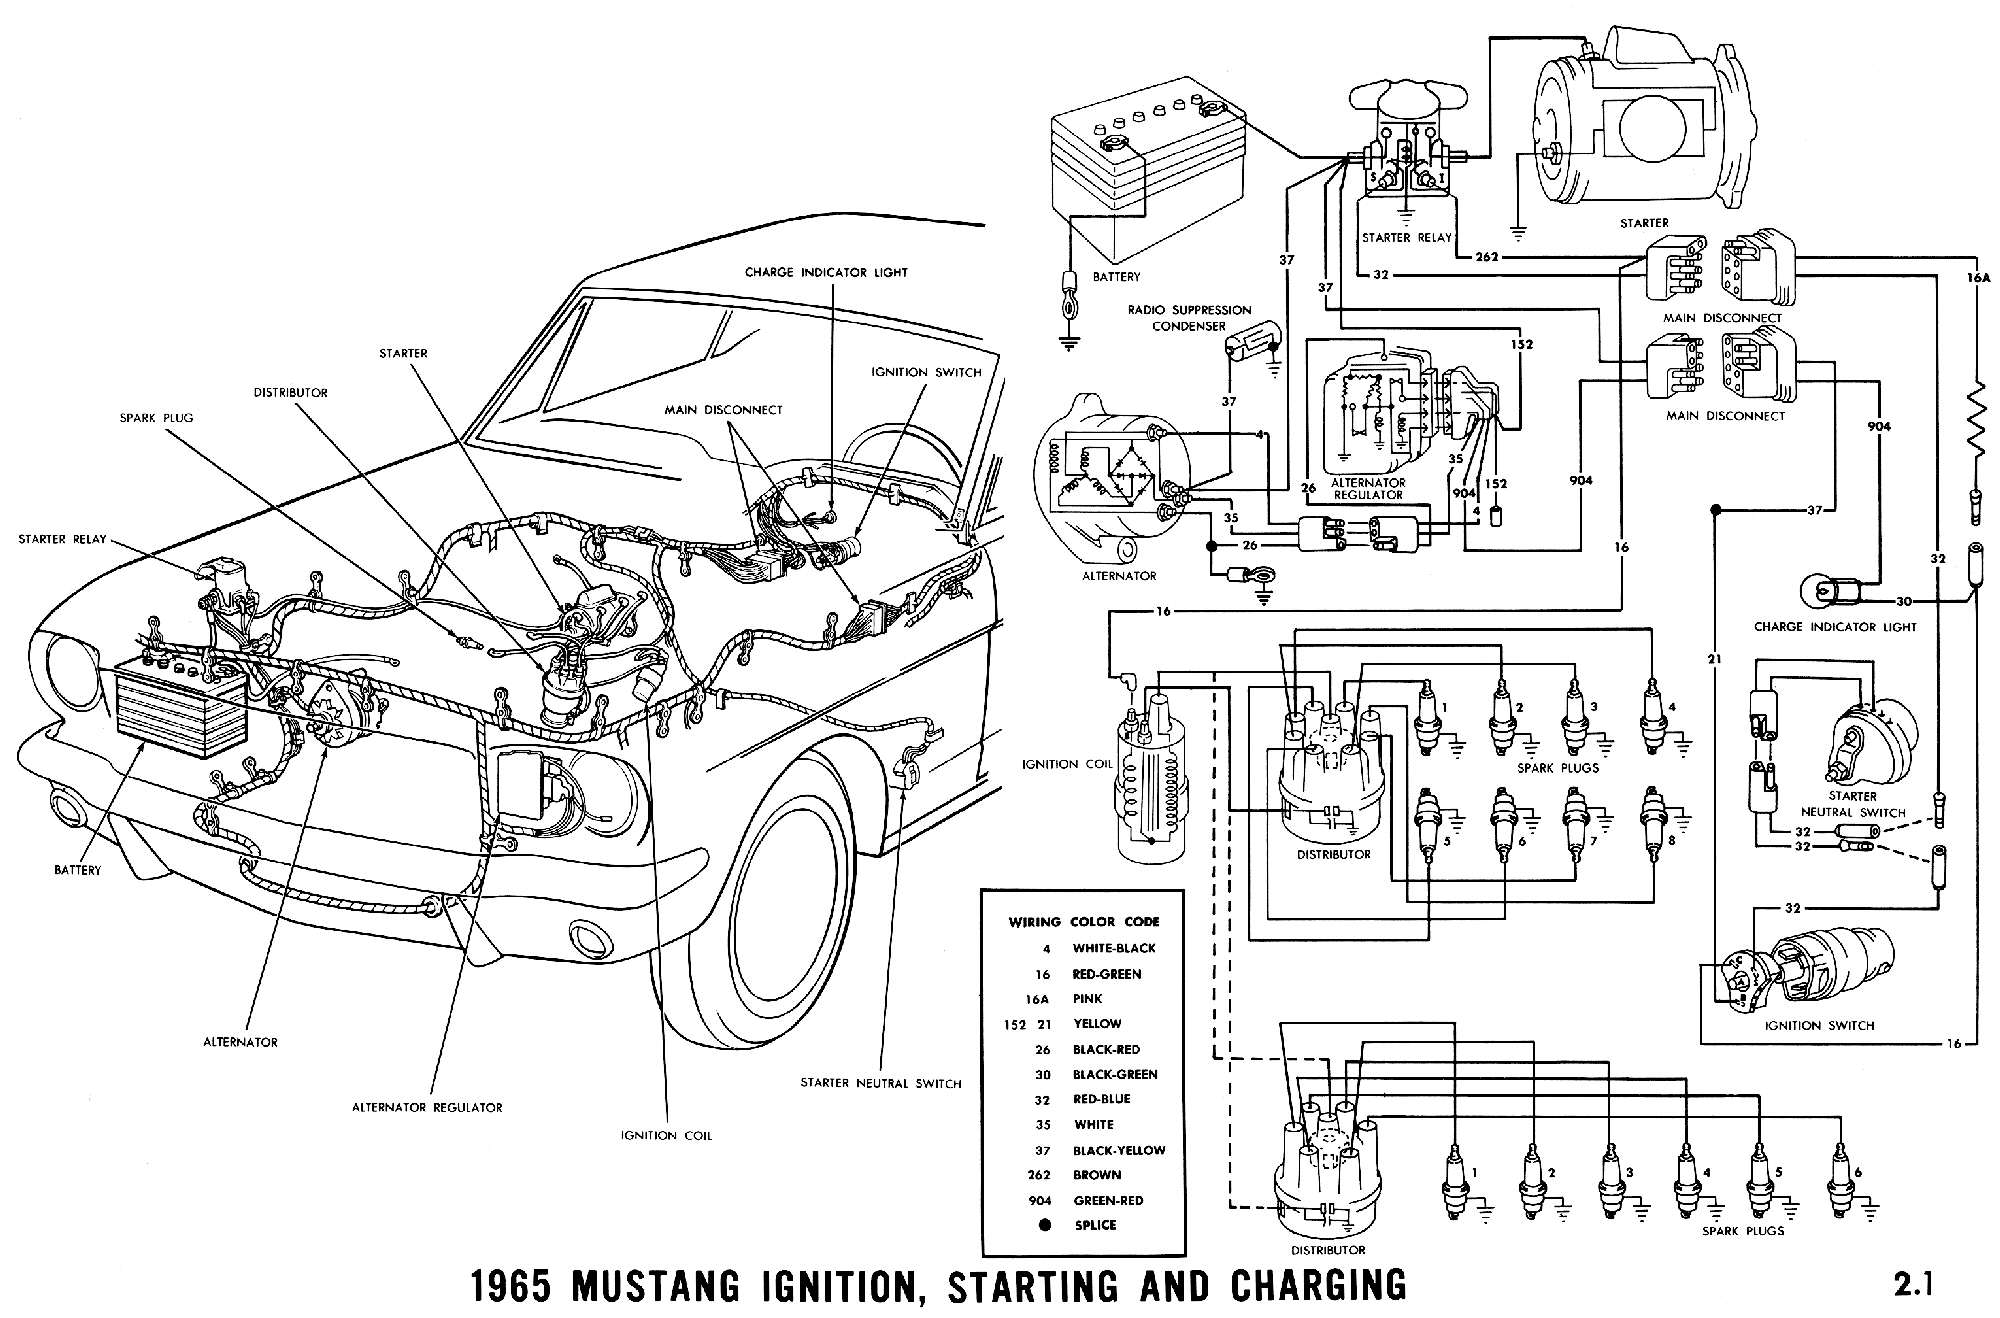 1965c 1965 mustang wiring diagrams average joe restoration 1965 ford mustang wiring diagrams at sewacar.co